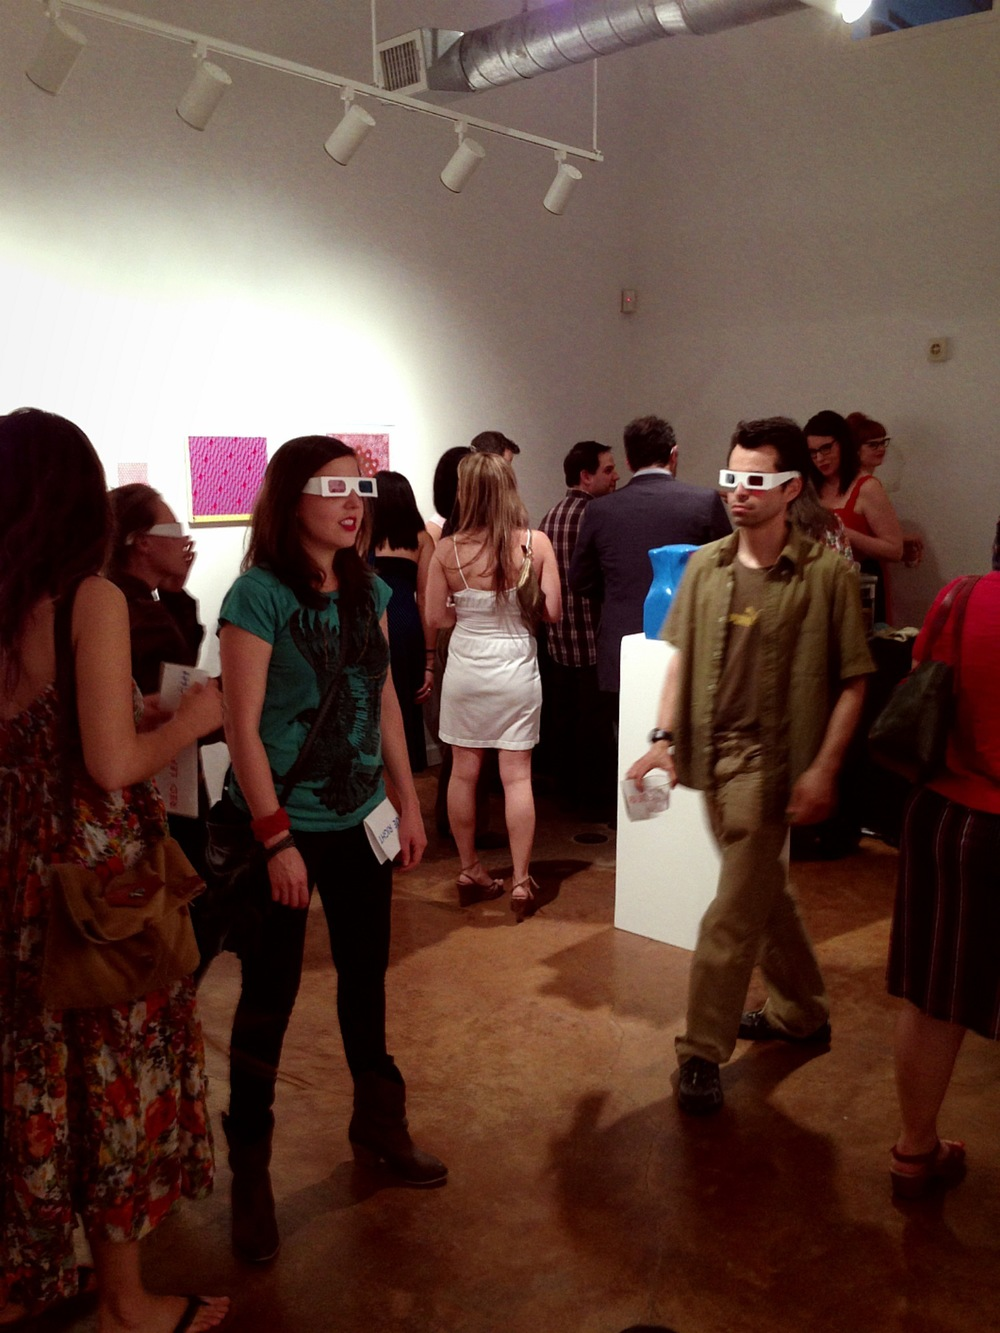 Art enthusiasts wearing 3D glasses provided by gallery.